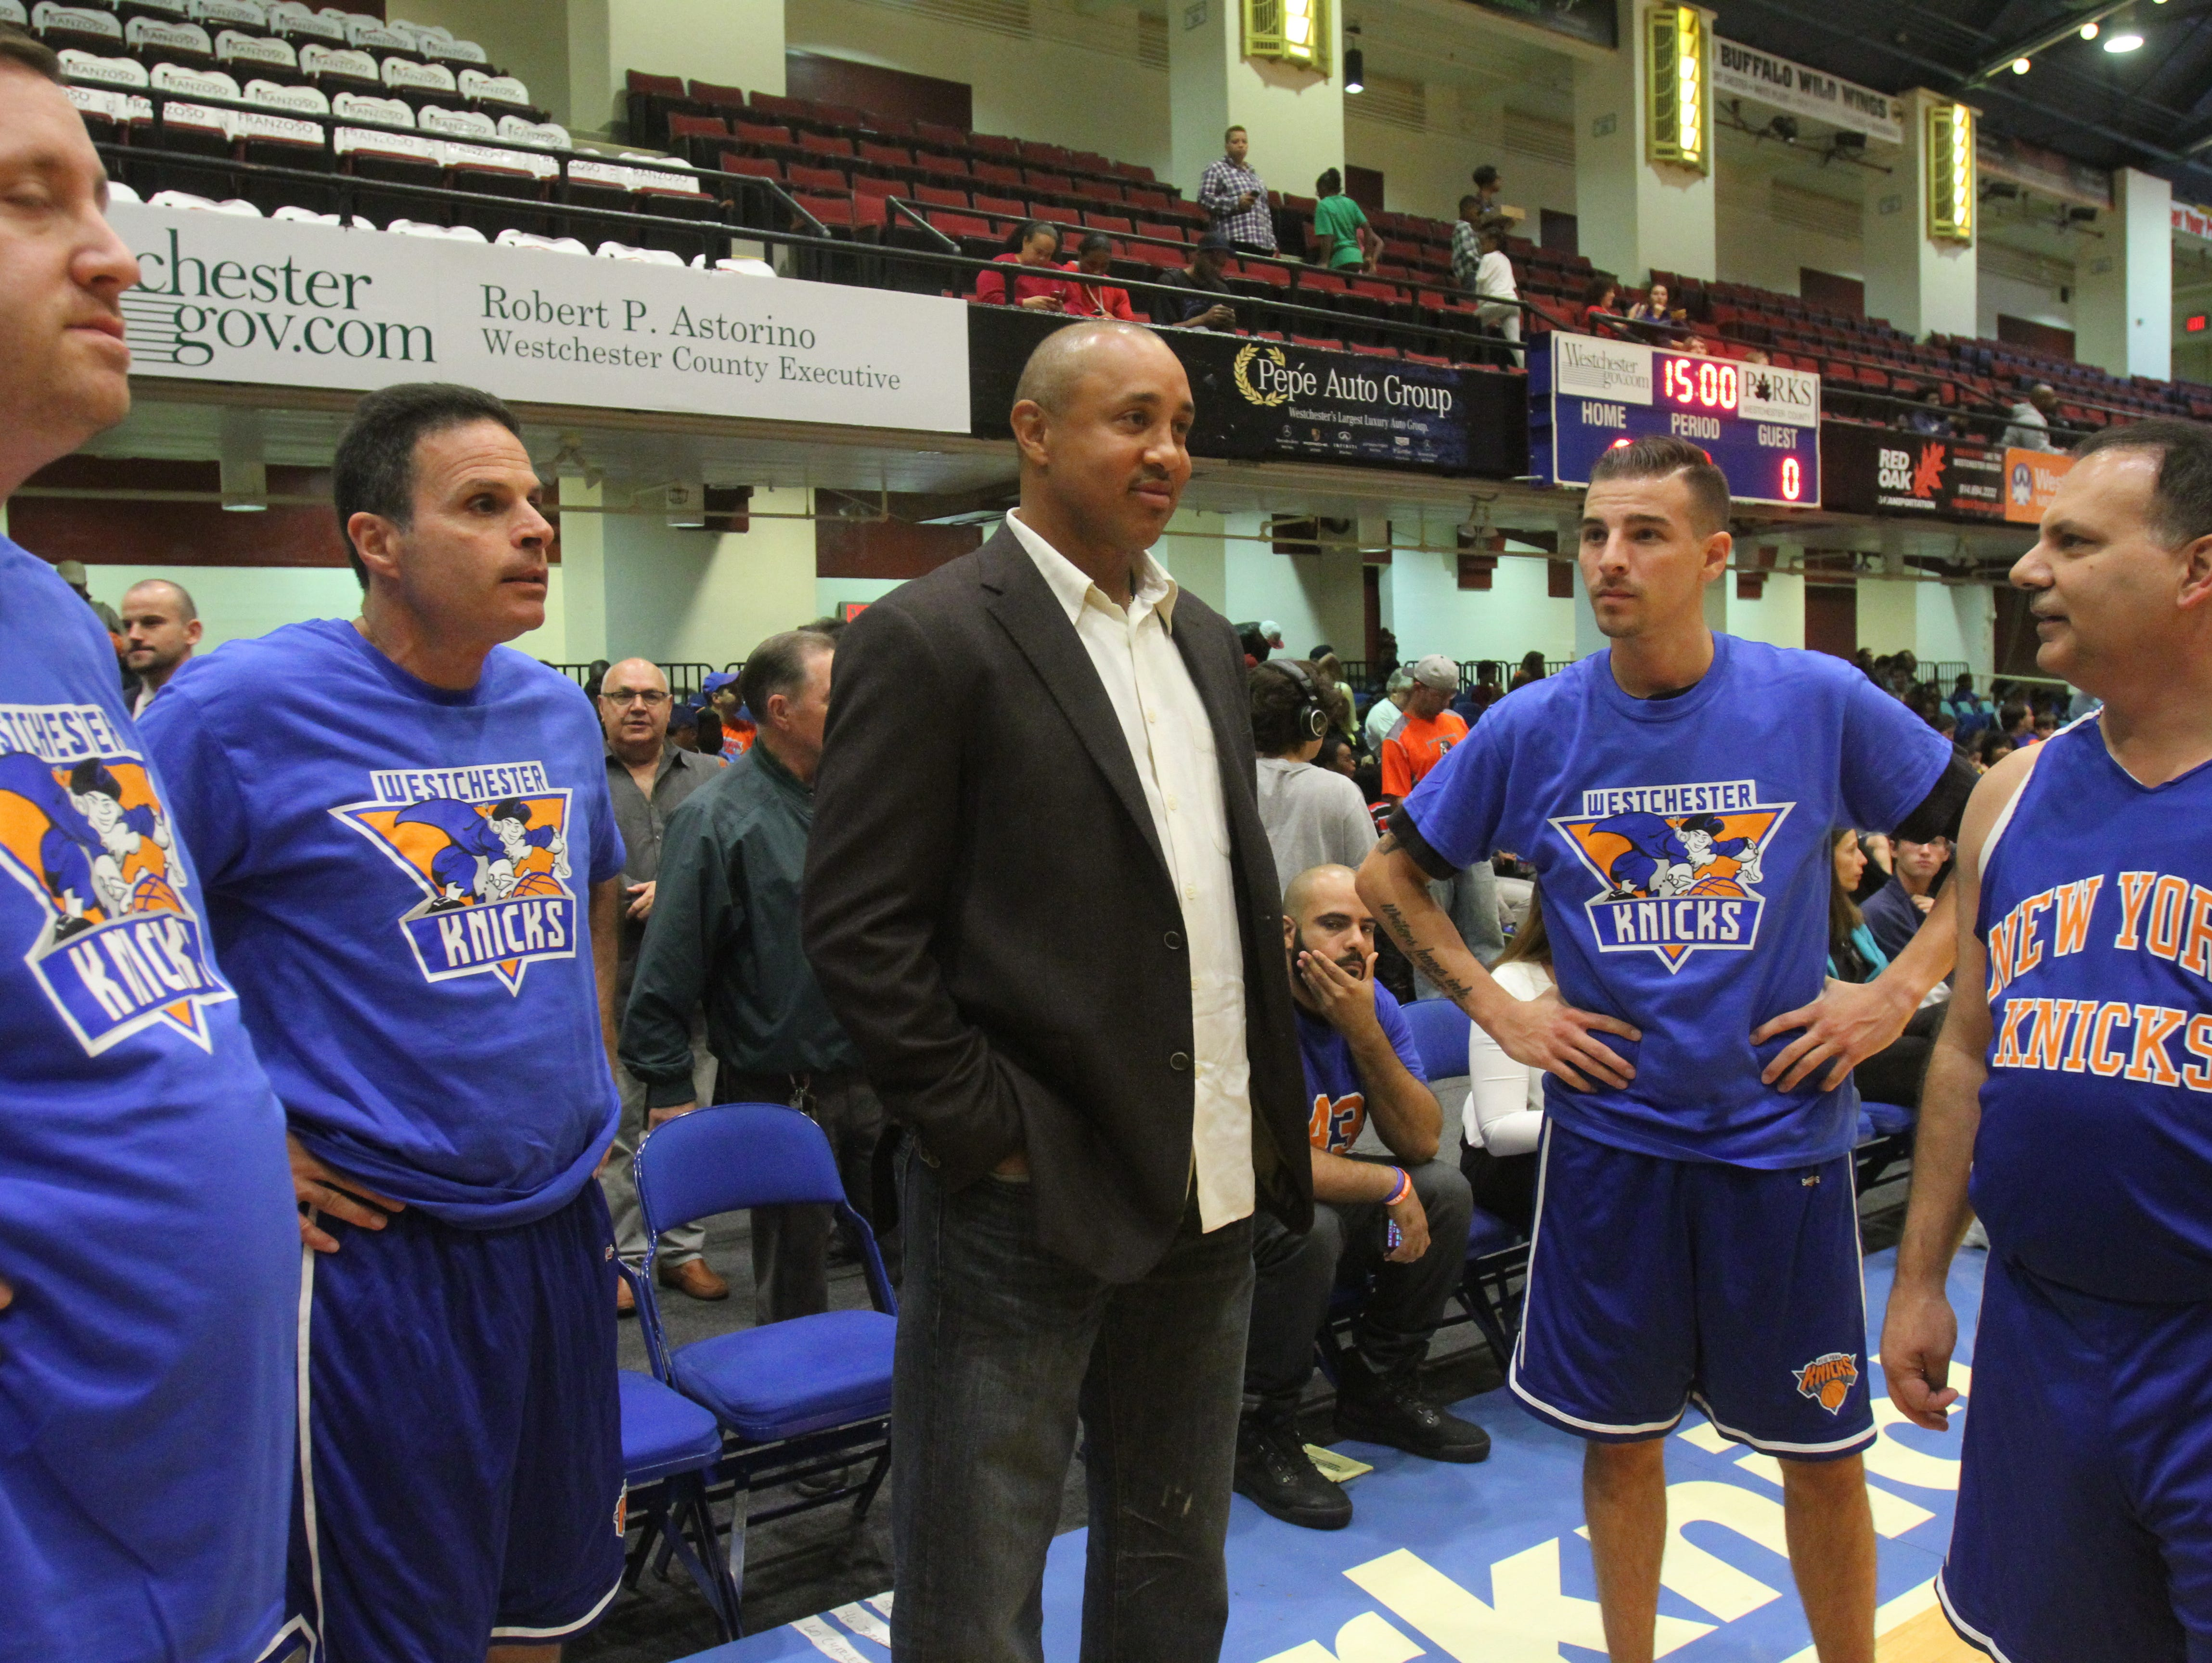 Former Knick John Starks was a guest coach in a Local Celebrity Game during the Westchester Knicks Open House for fans at the Westchester County Center in White Plains Oct. 6, 2015.